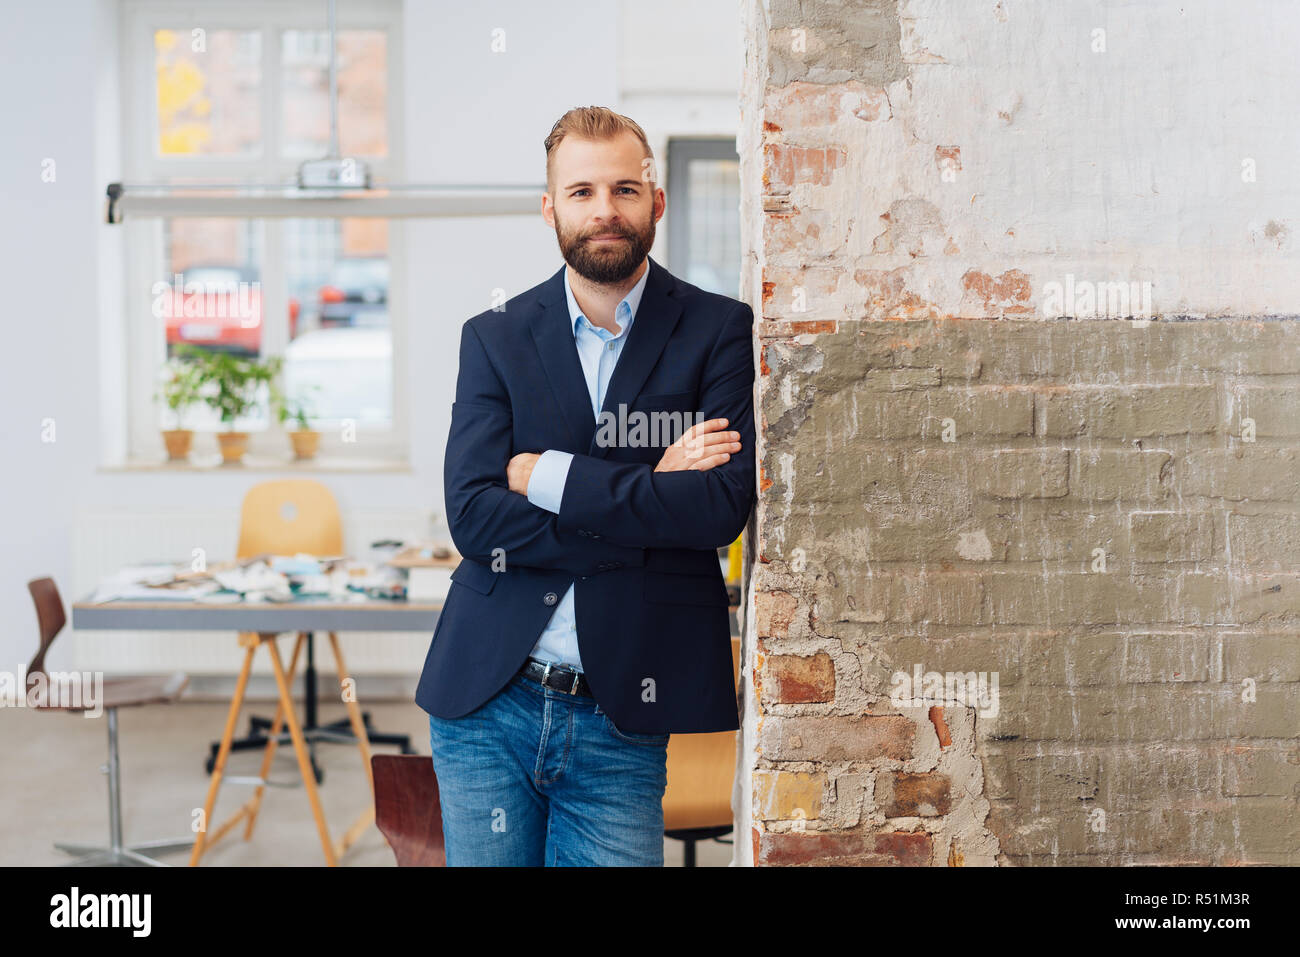 A young, entrepreneurial man looking at the camera while leaning on a wall at home. - Stock Image